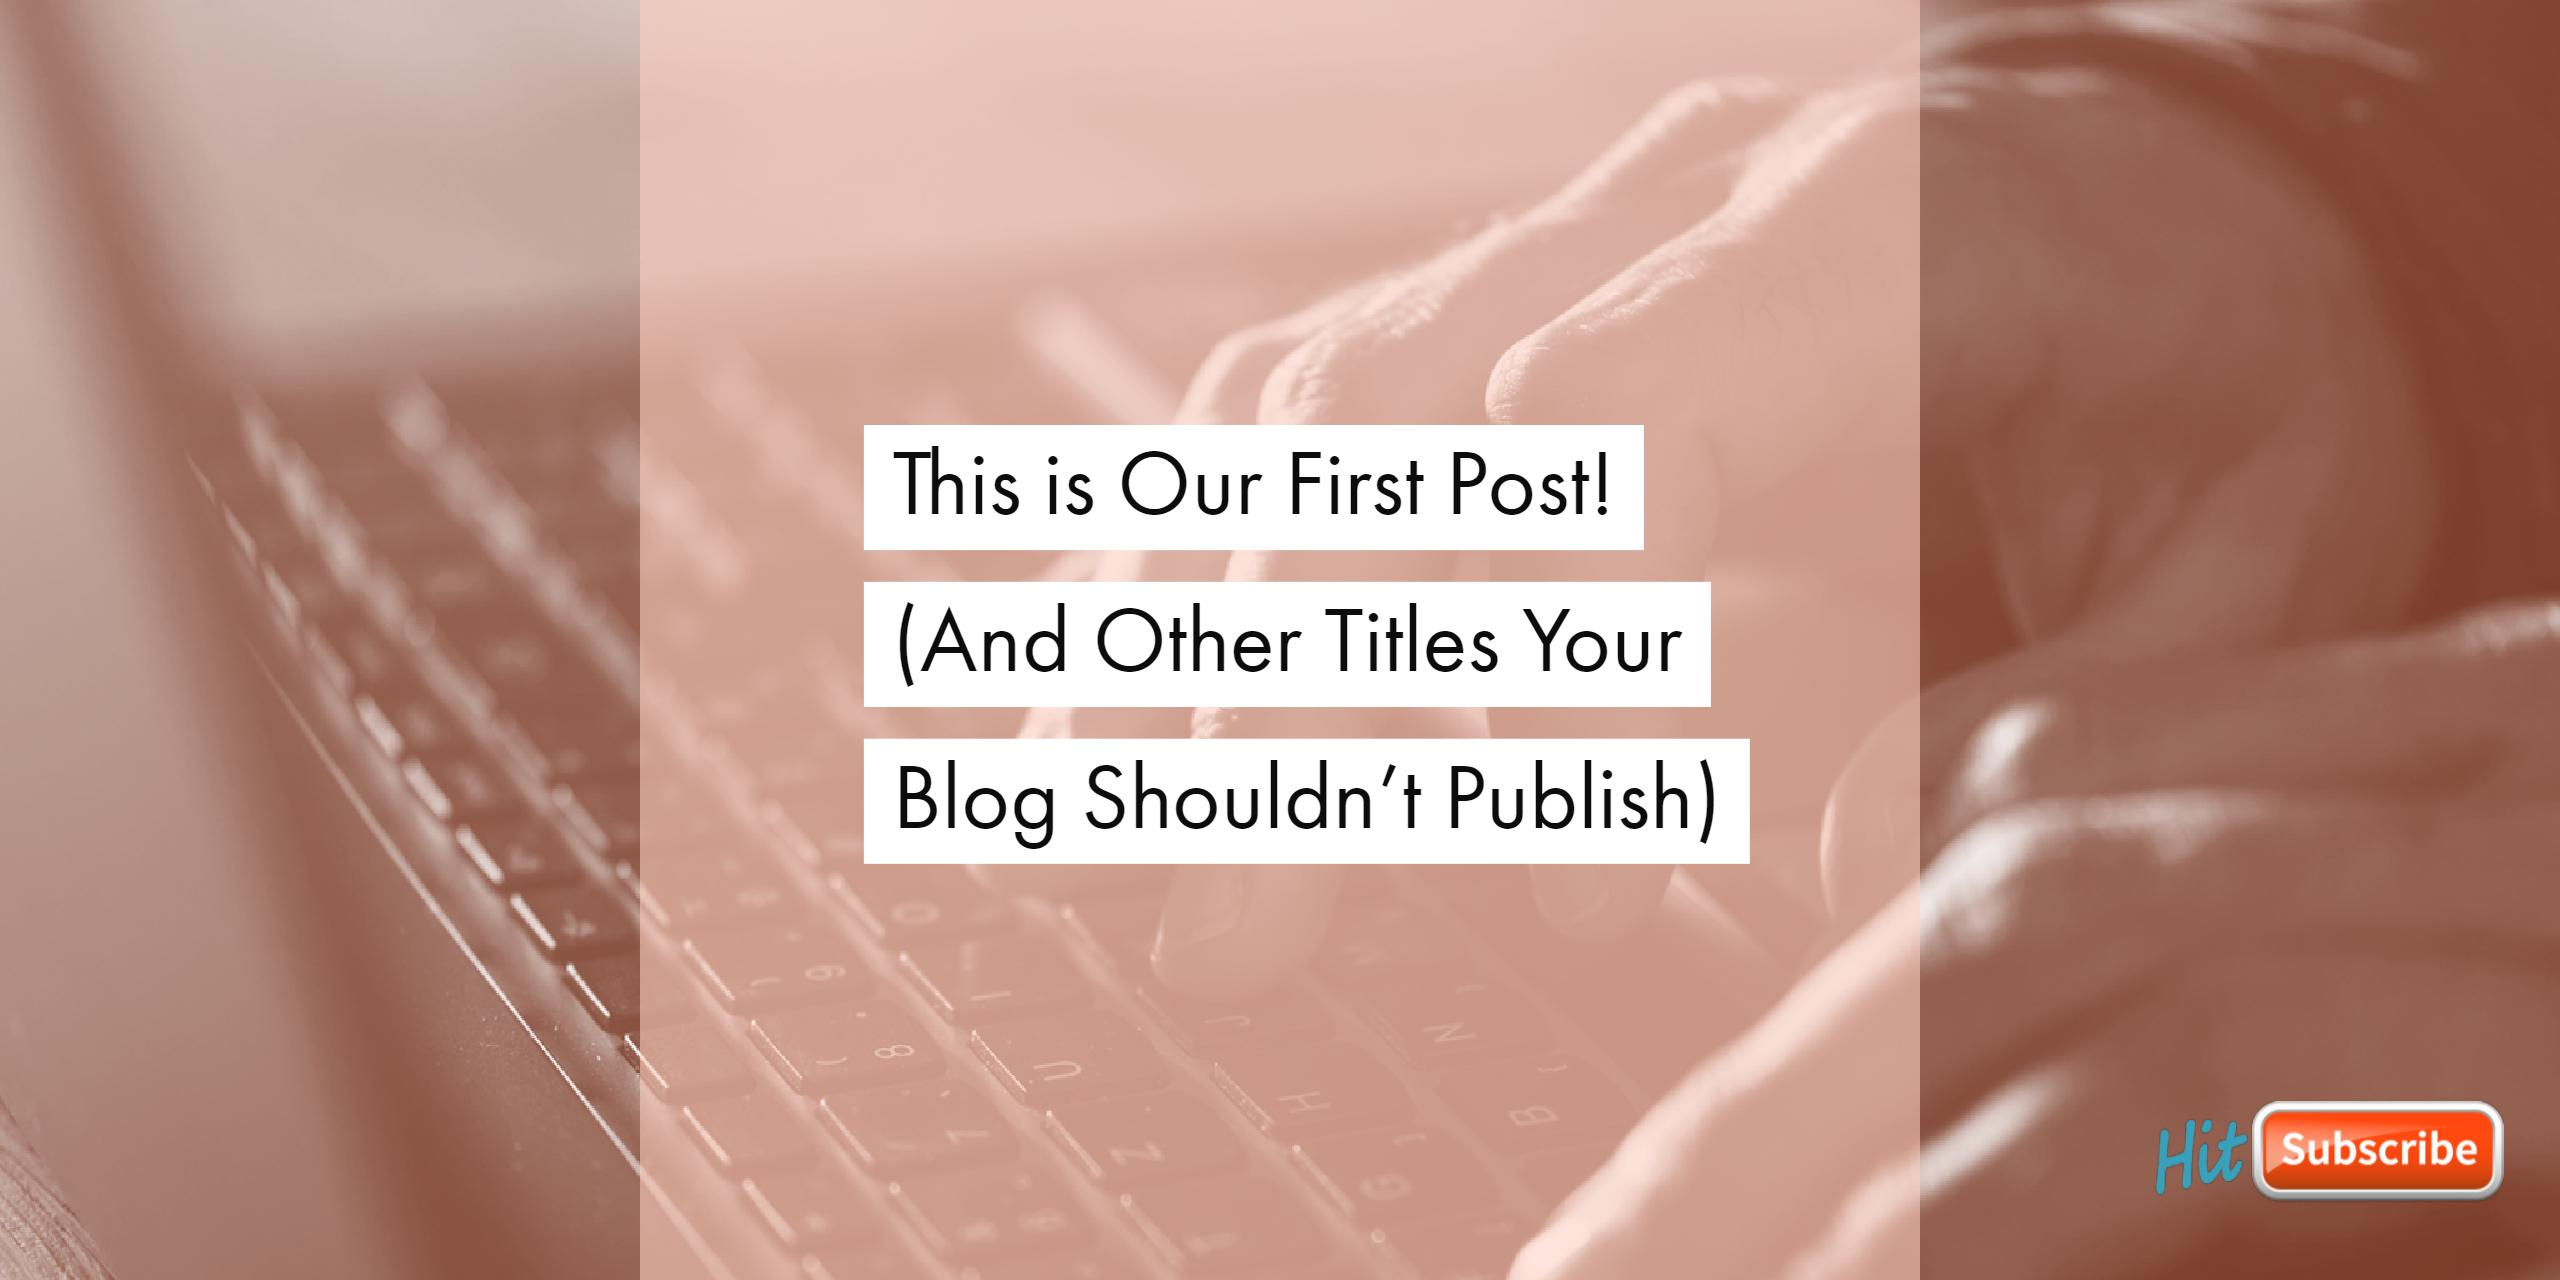 This is Our First Post!  (And Other Titles Your Blog Shouldn't Publish)